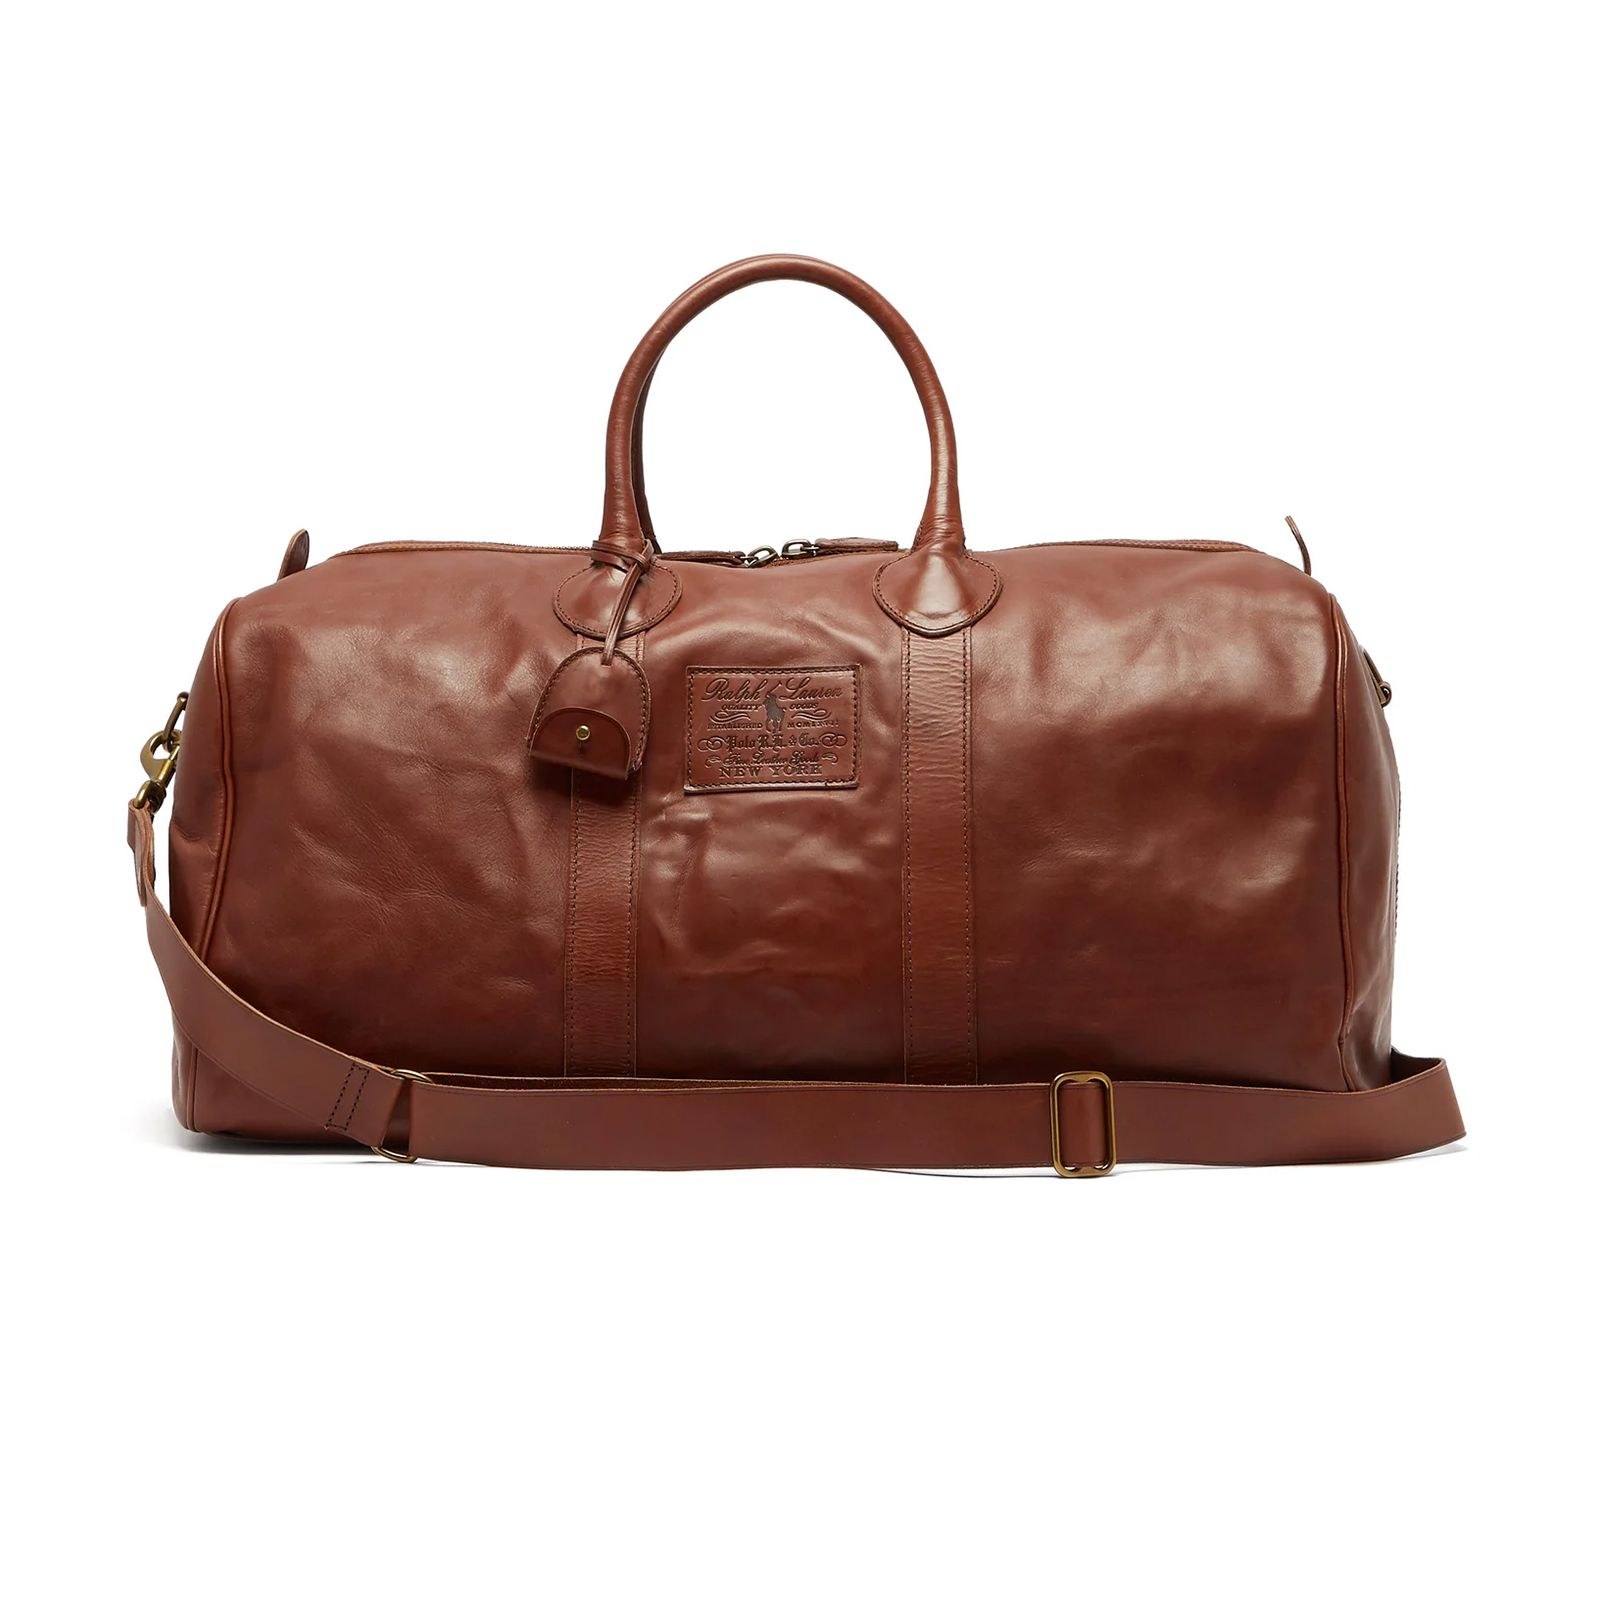 Best weekend bags for men